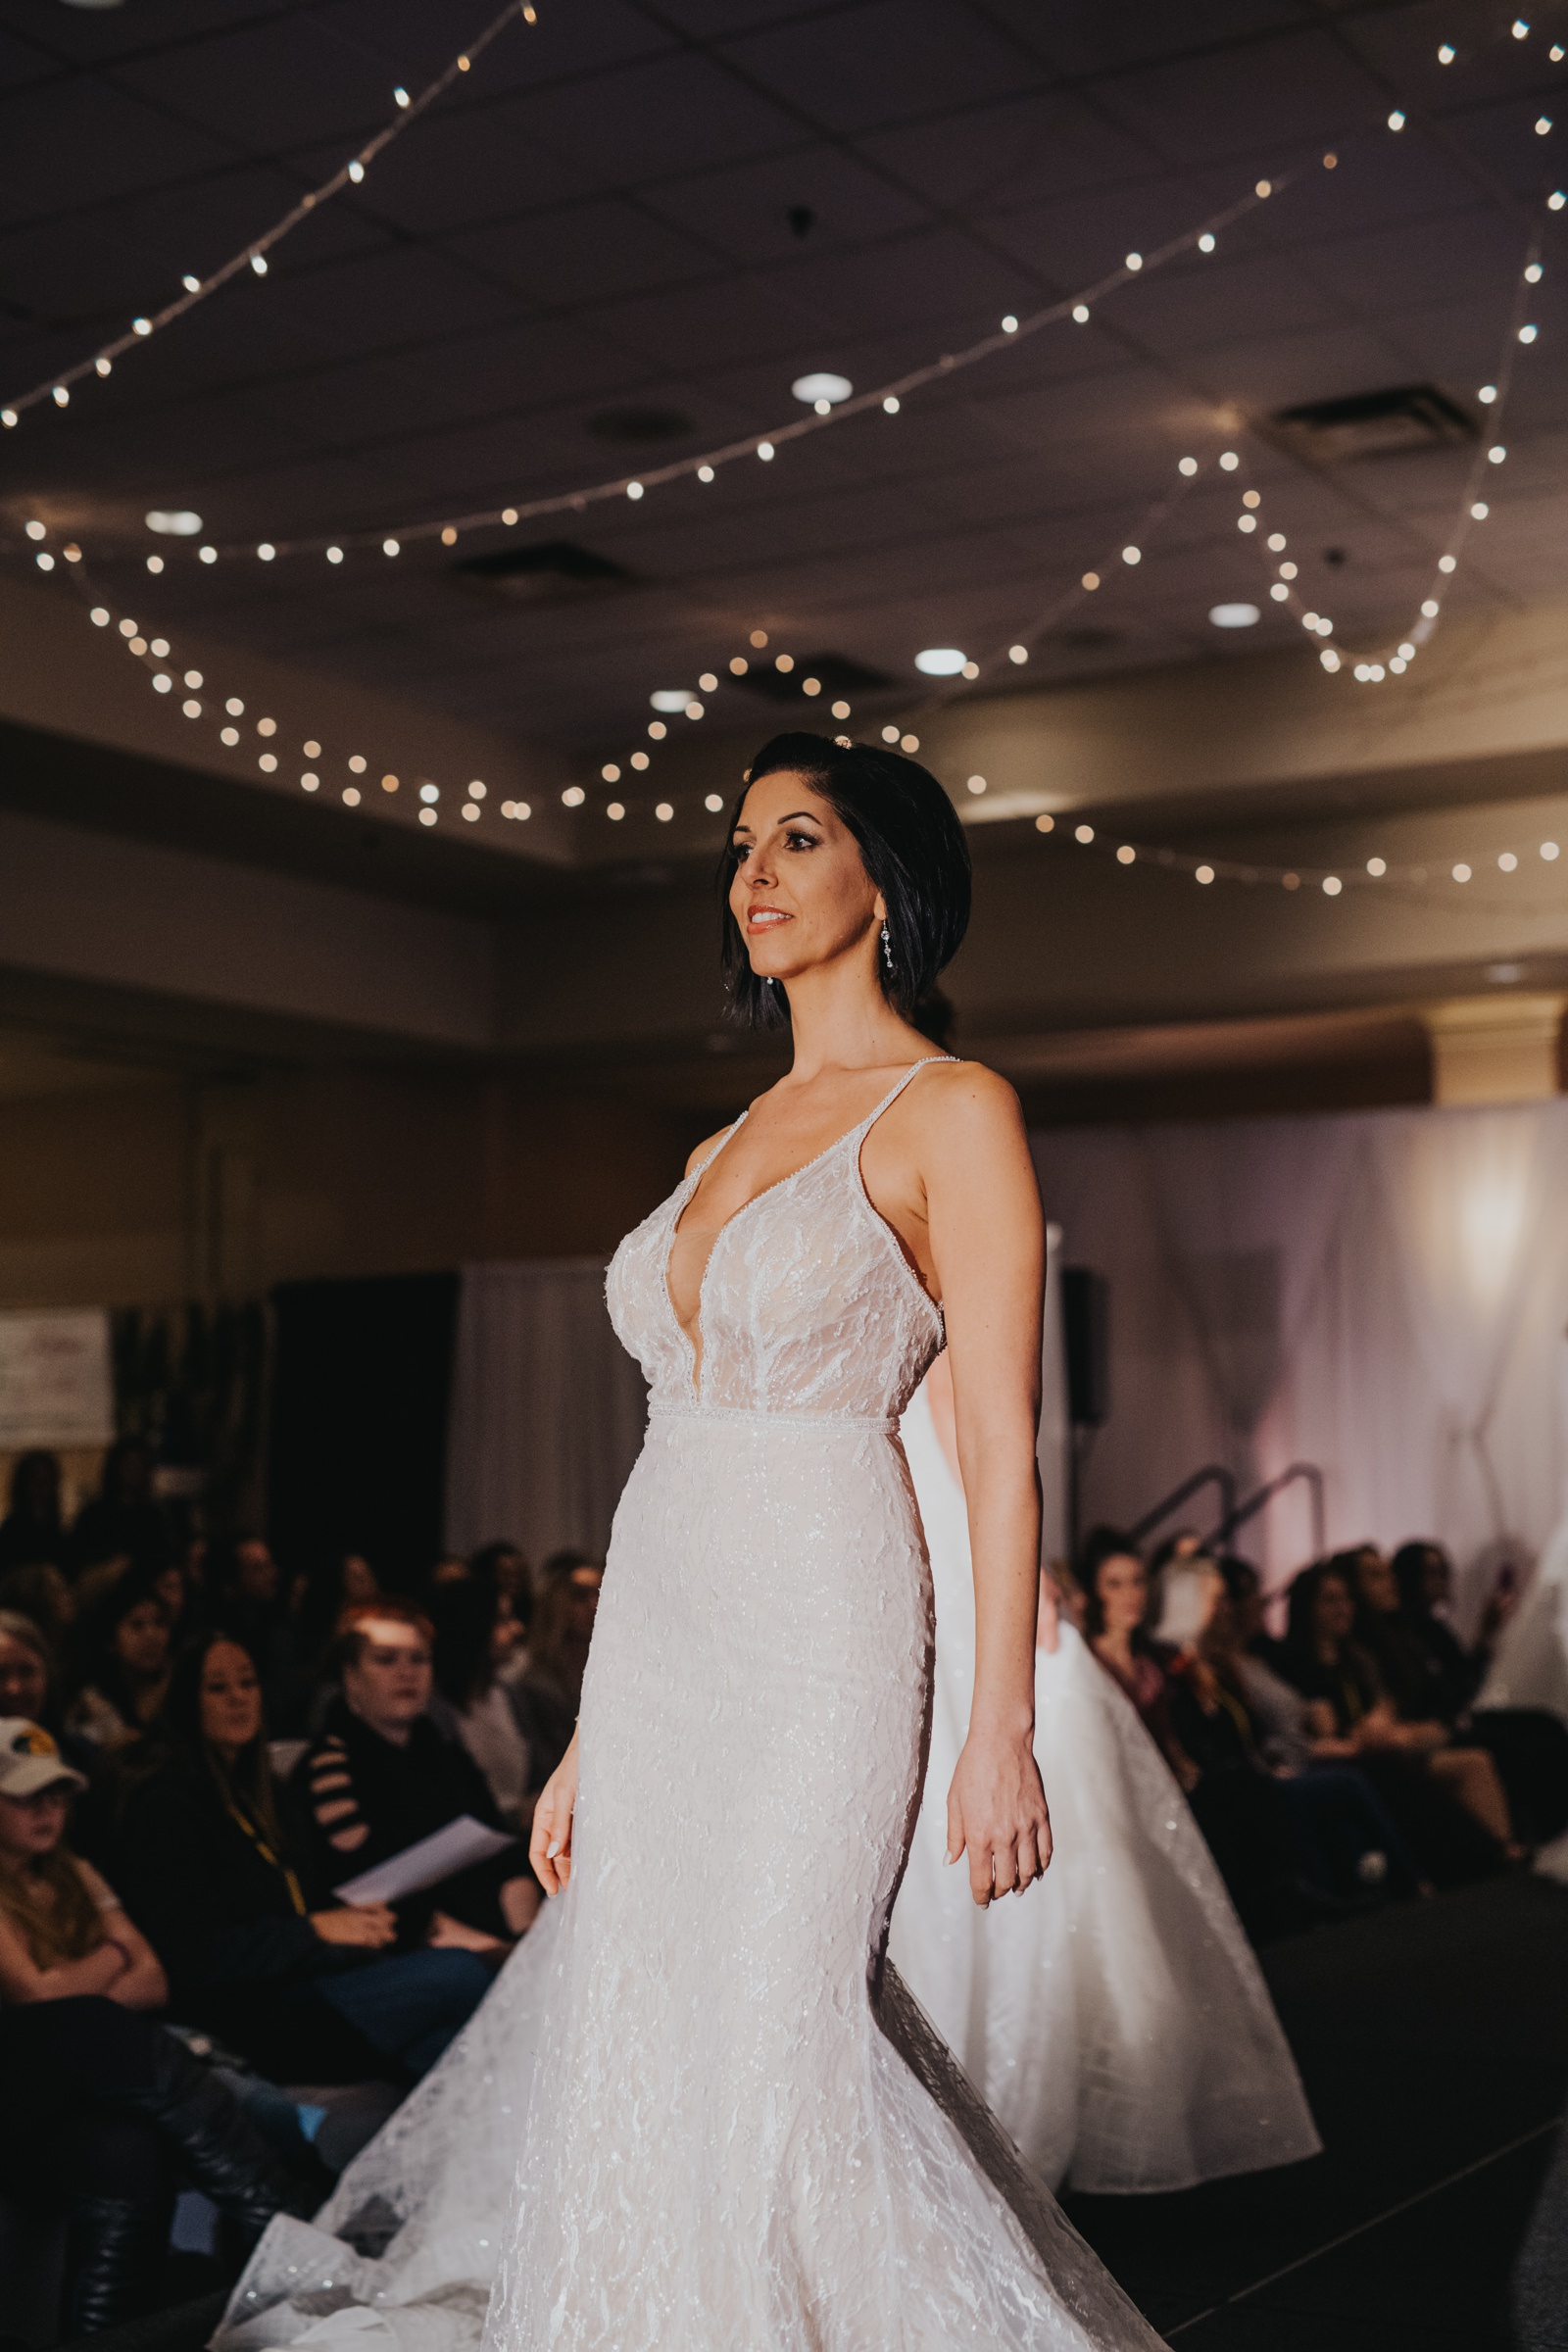 Bridal Expo - Joelsview Photography_0080